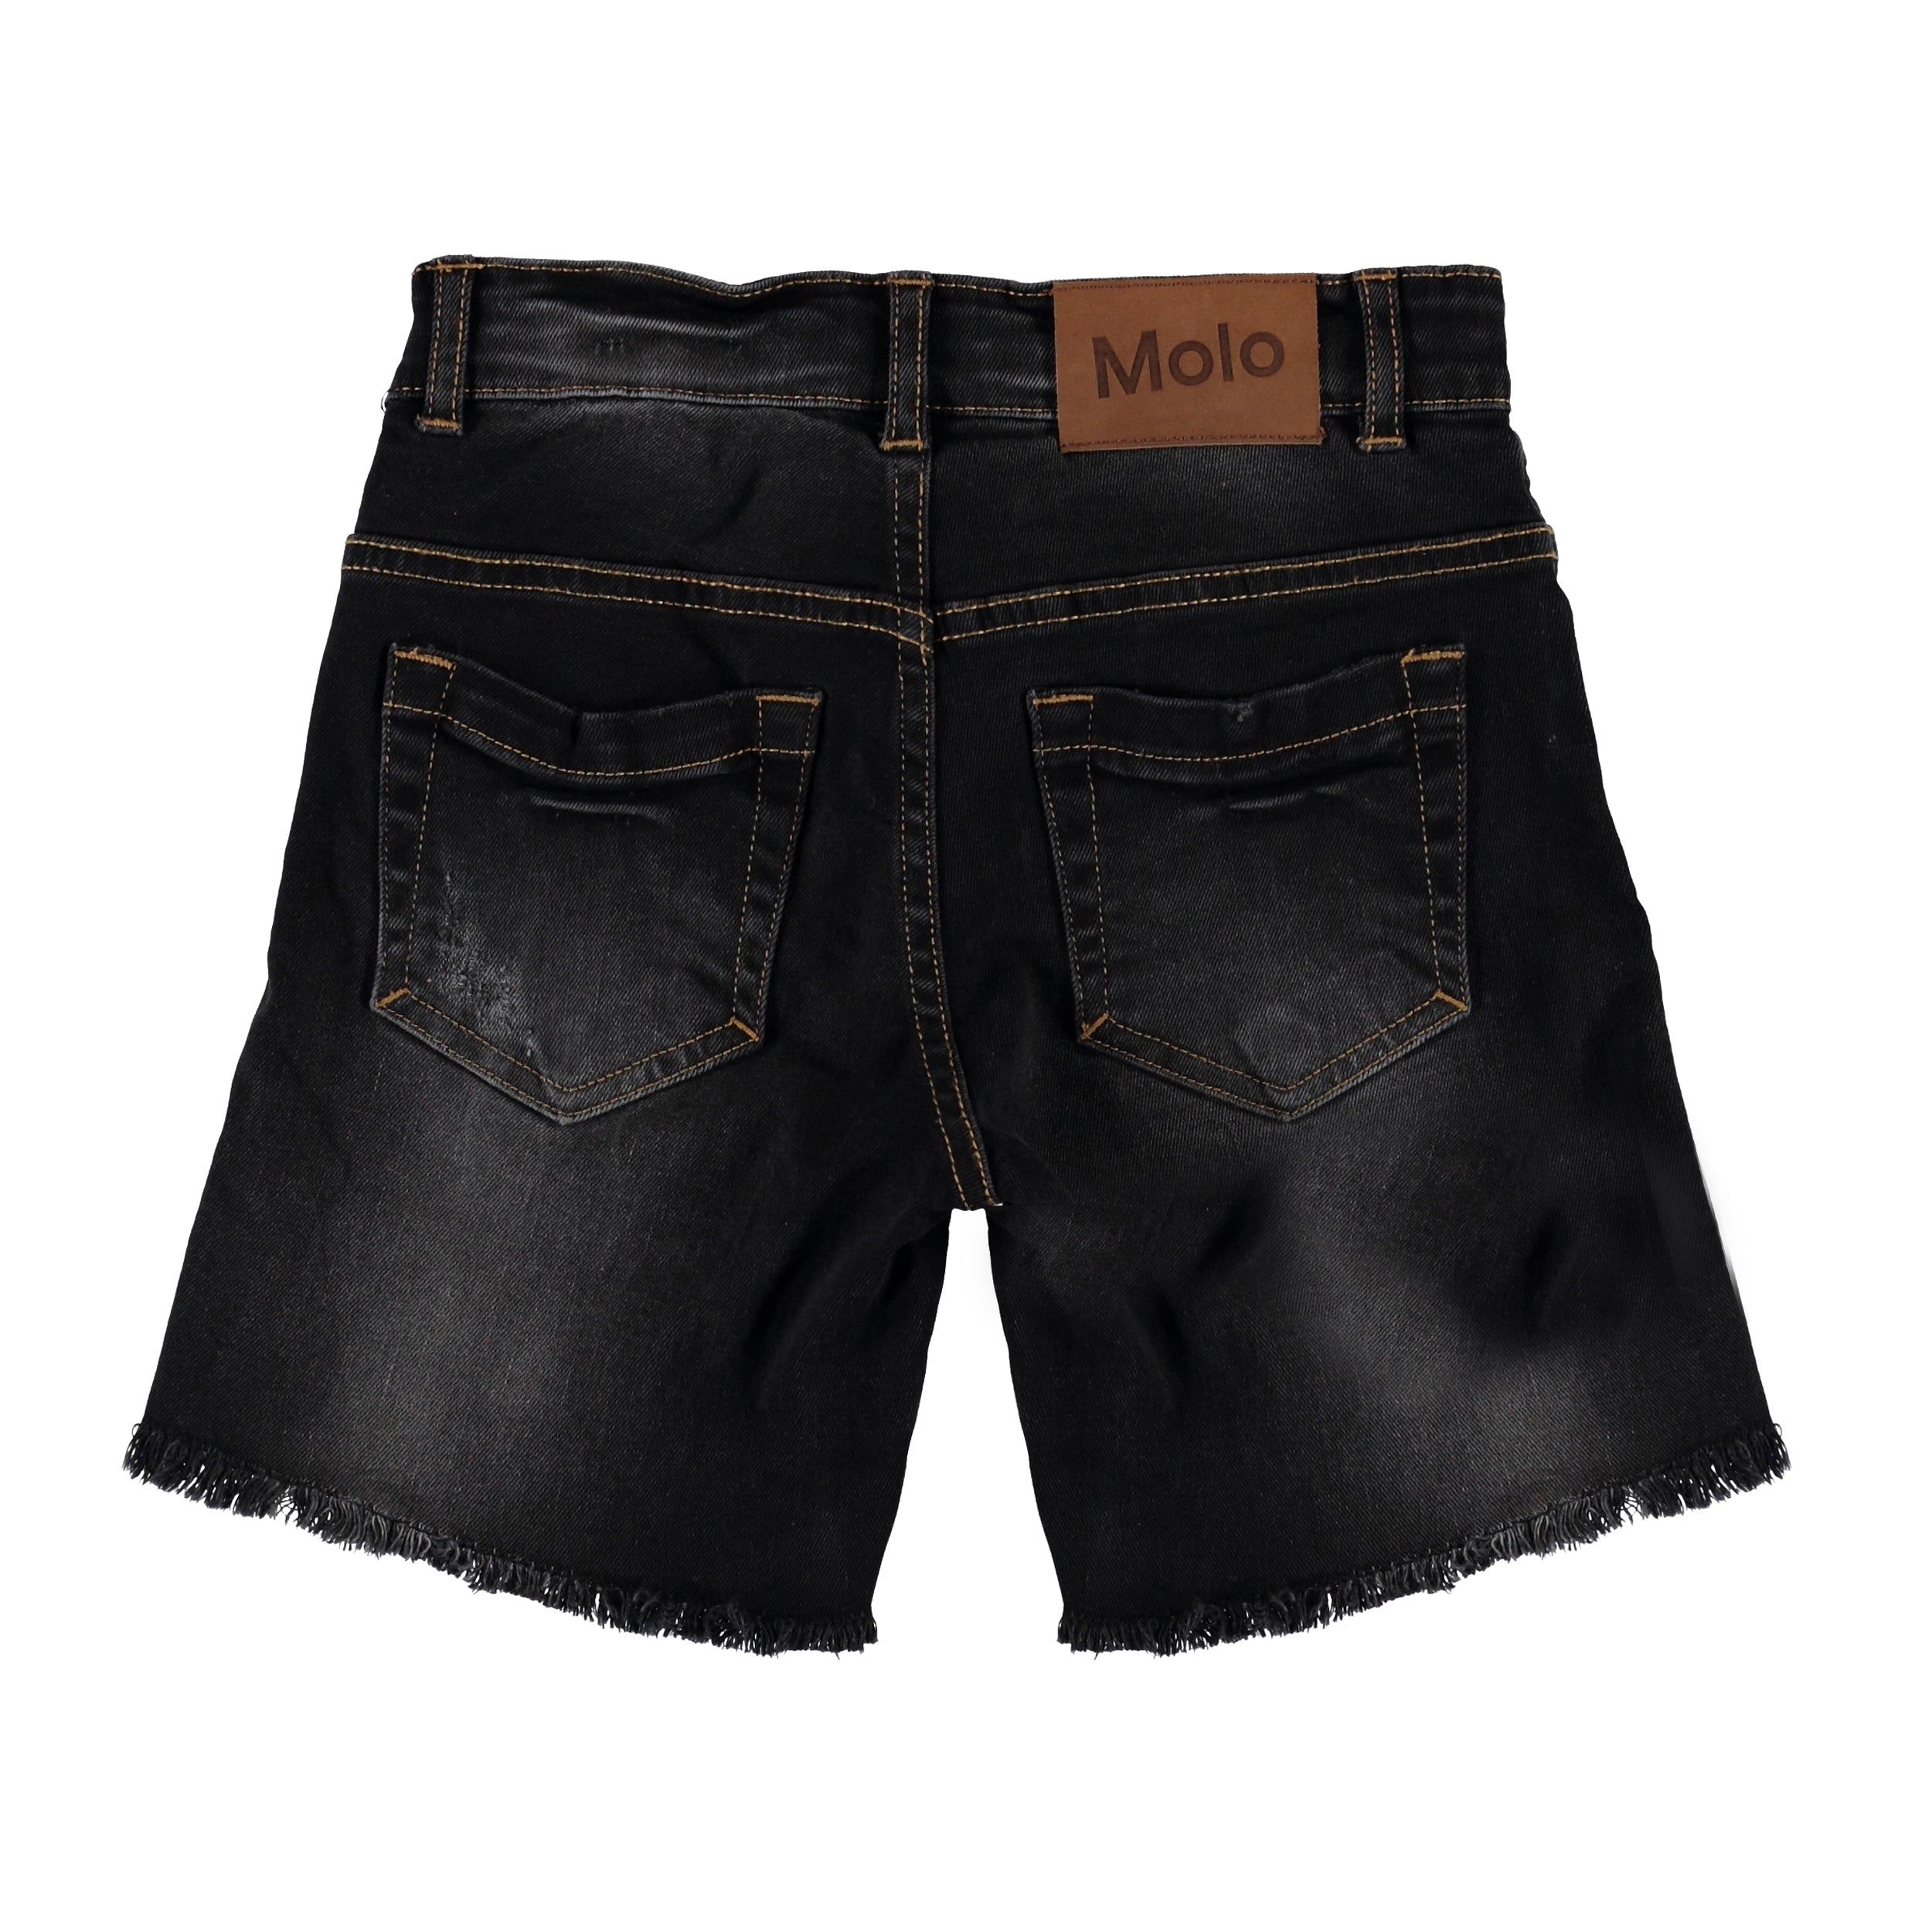 Molo Avian Shorts - Washed Black